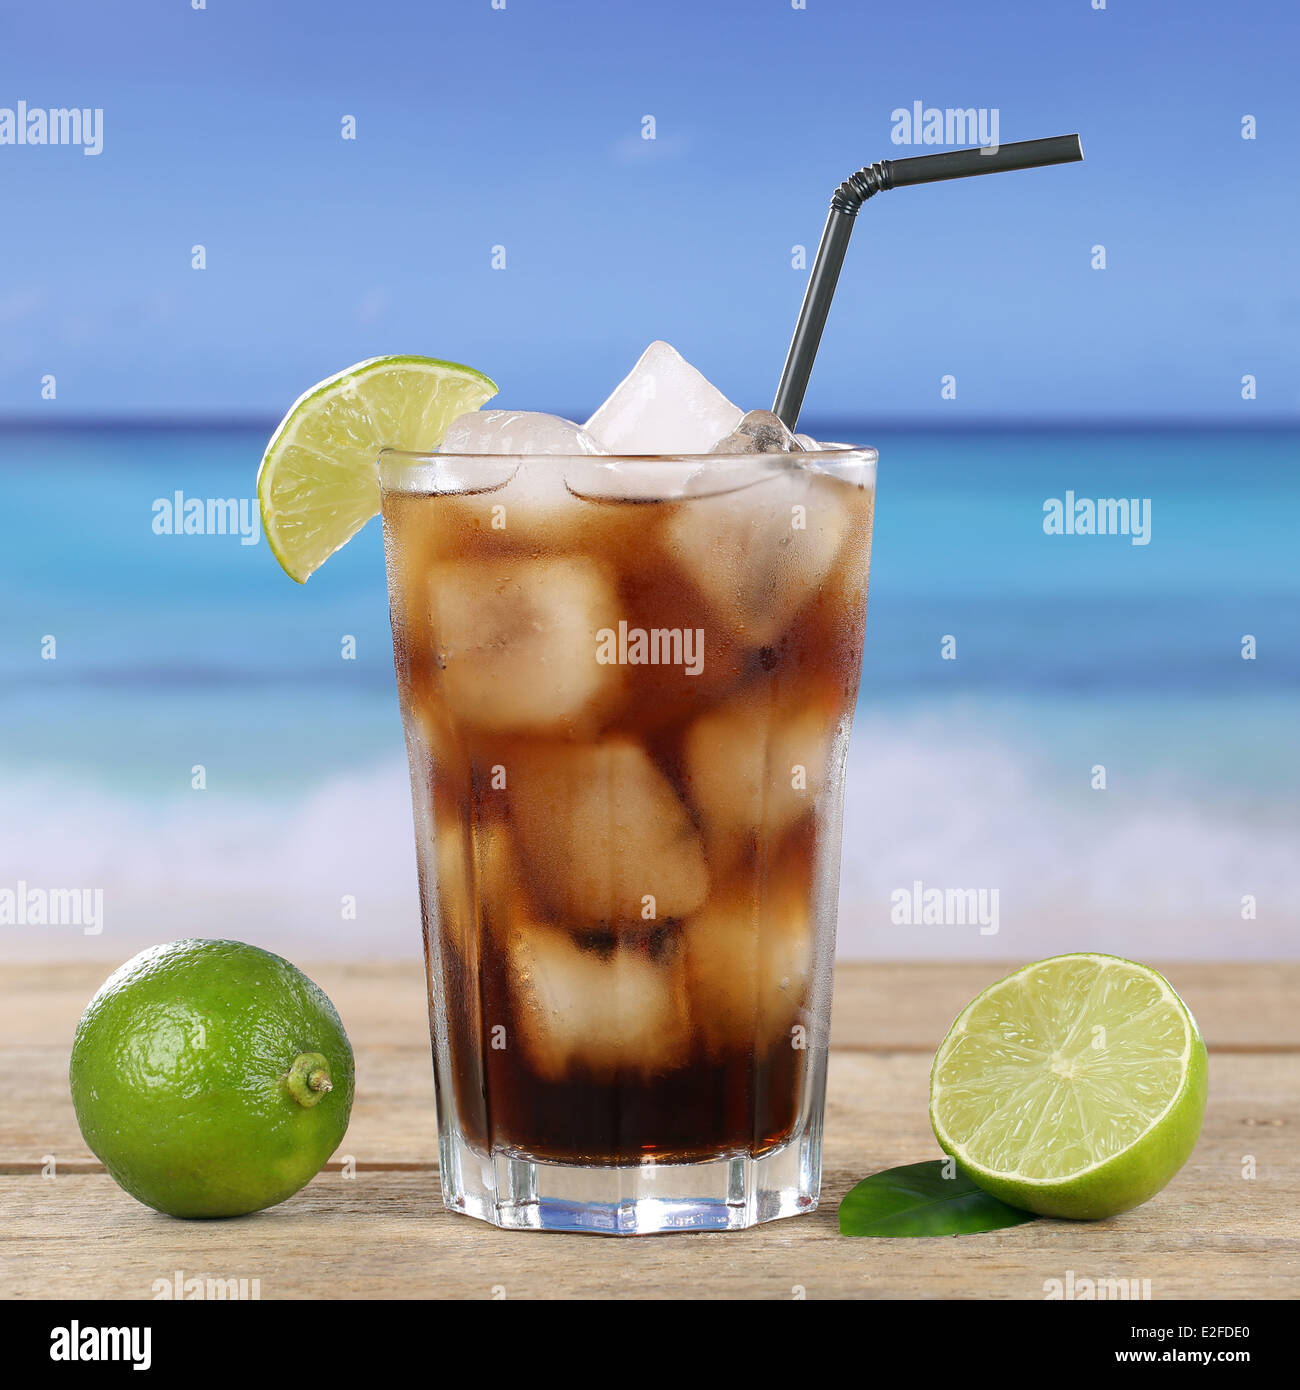 Cola or Cuba Libre cocktail drink in glass with ice cubes on the beach - Stock Image